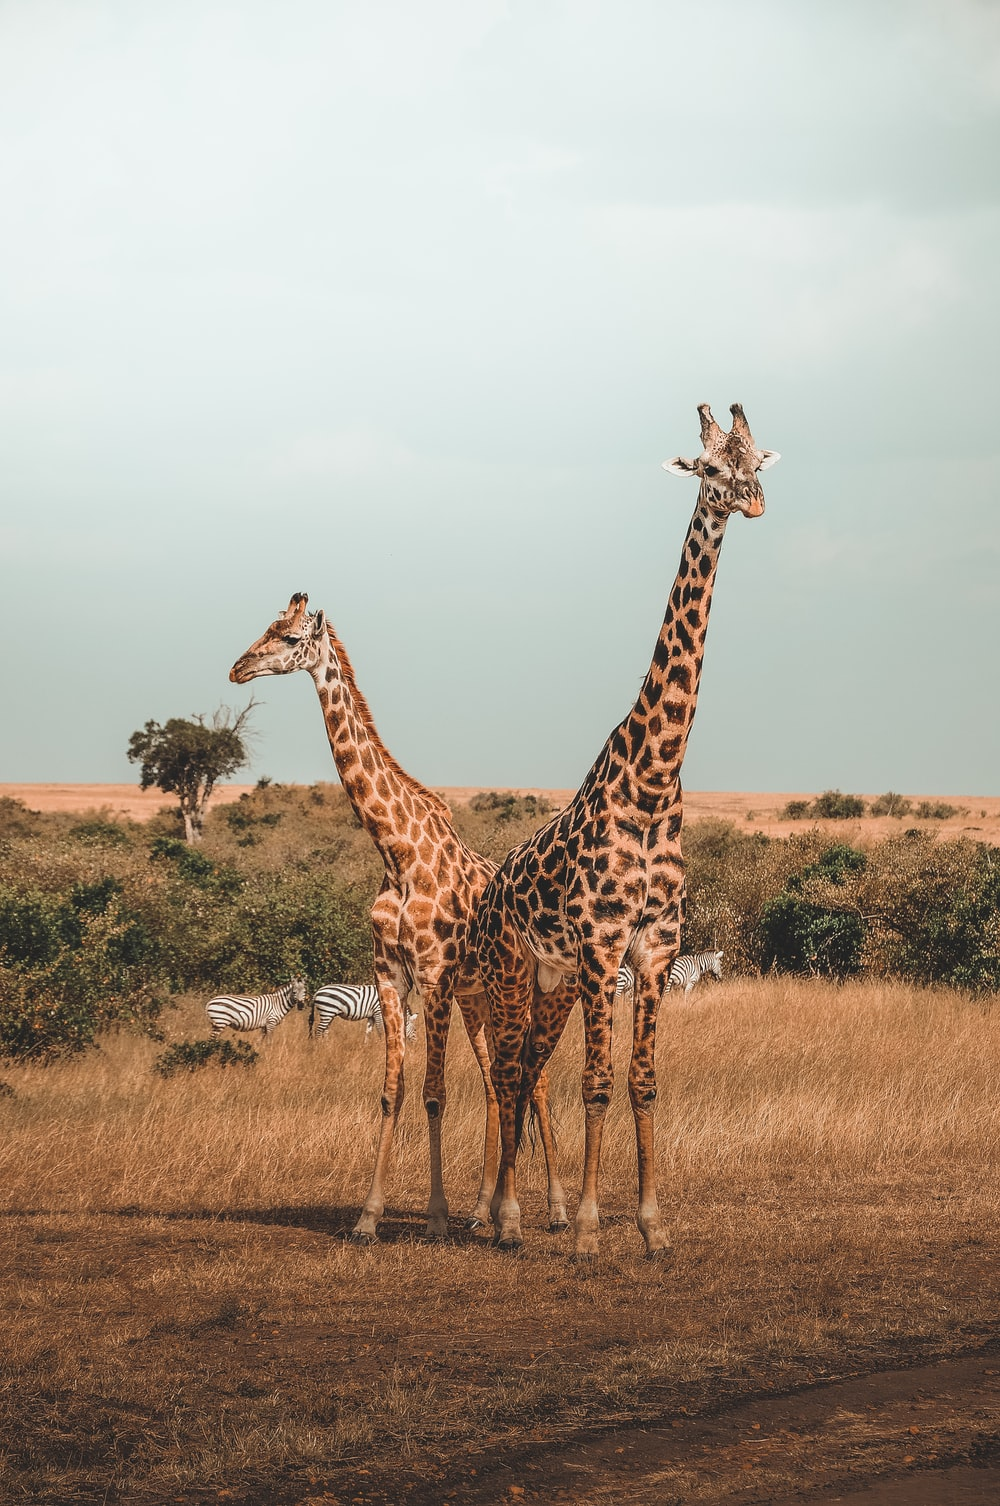 animal pictures hd download free images stock photos on unsplash